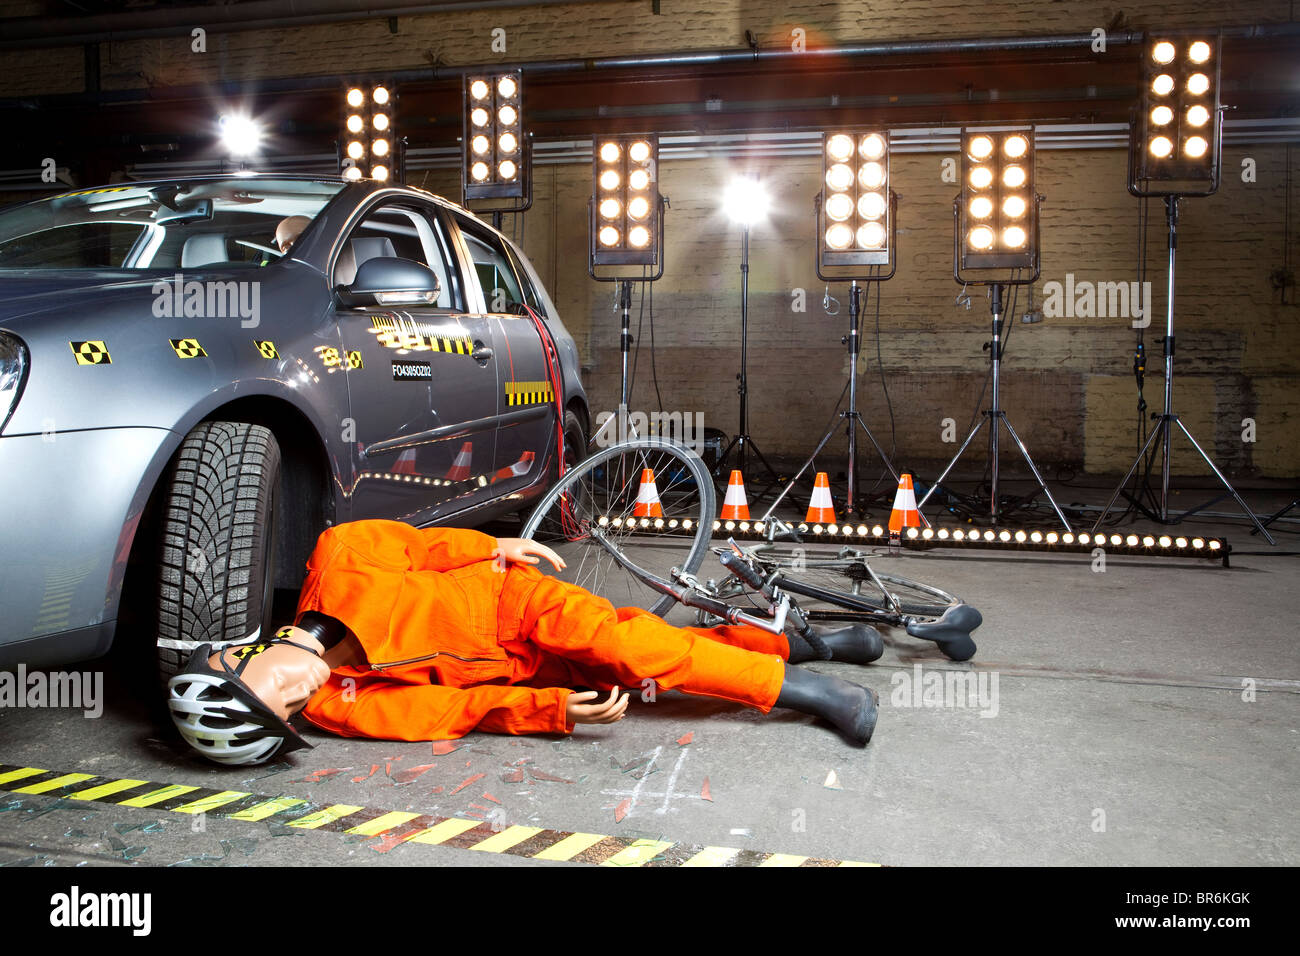 A crash test dummy on ground after scooter crashed into car Stock